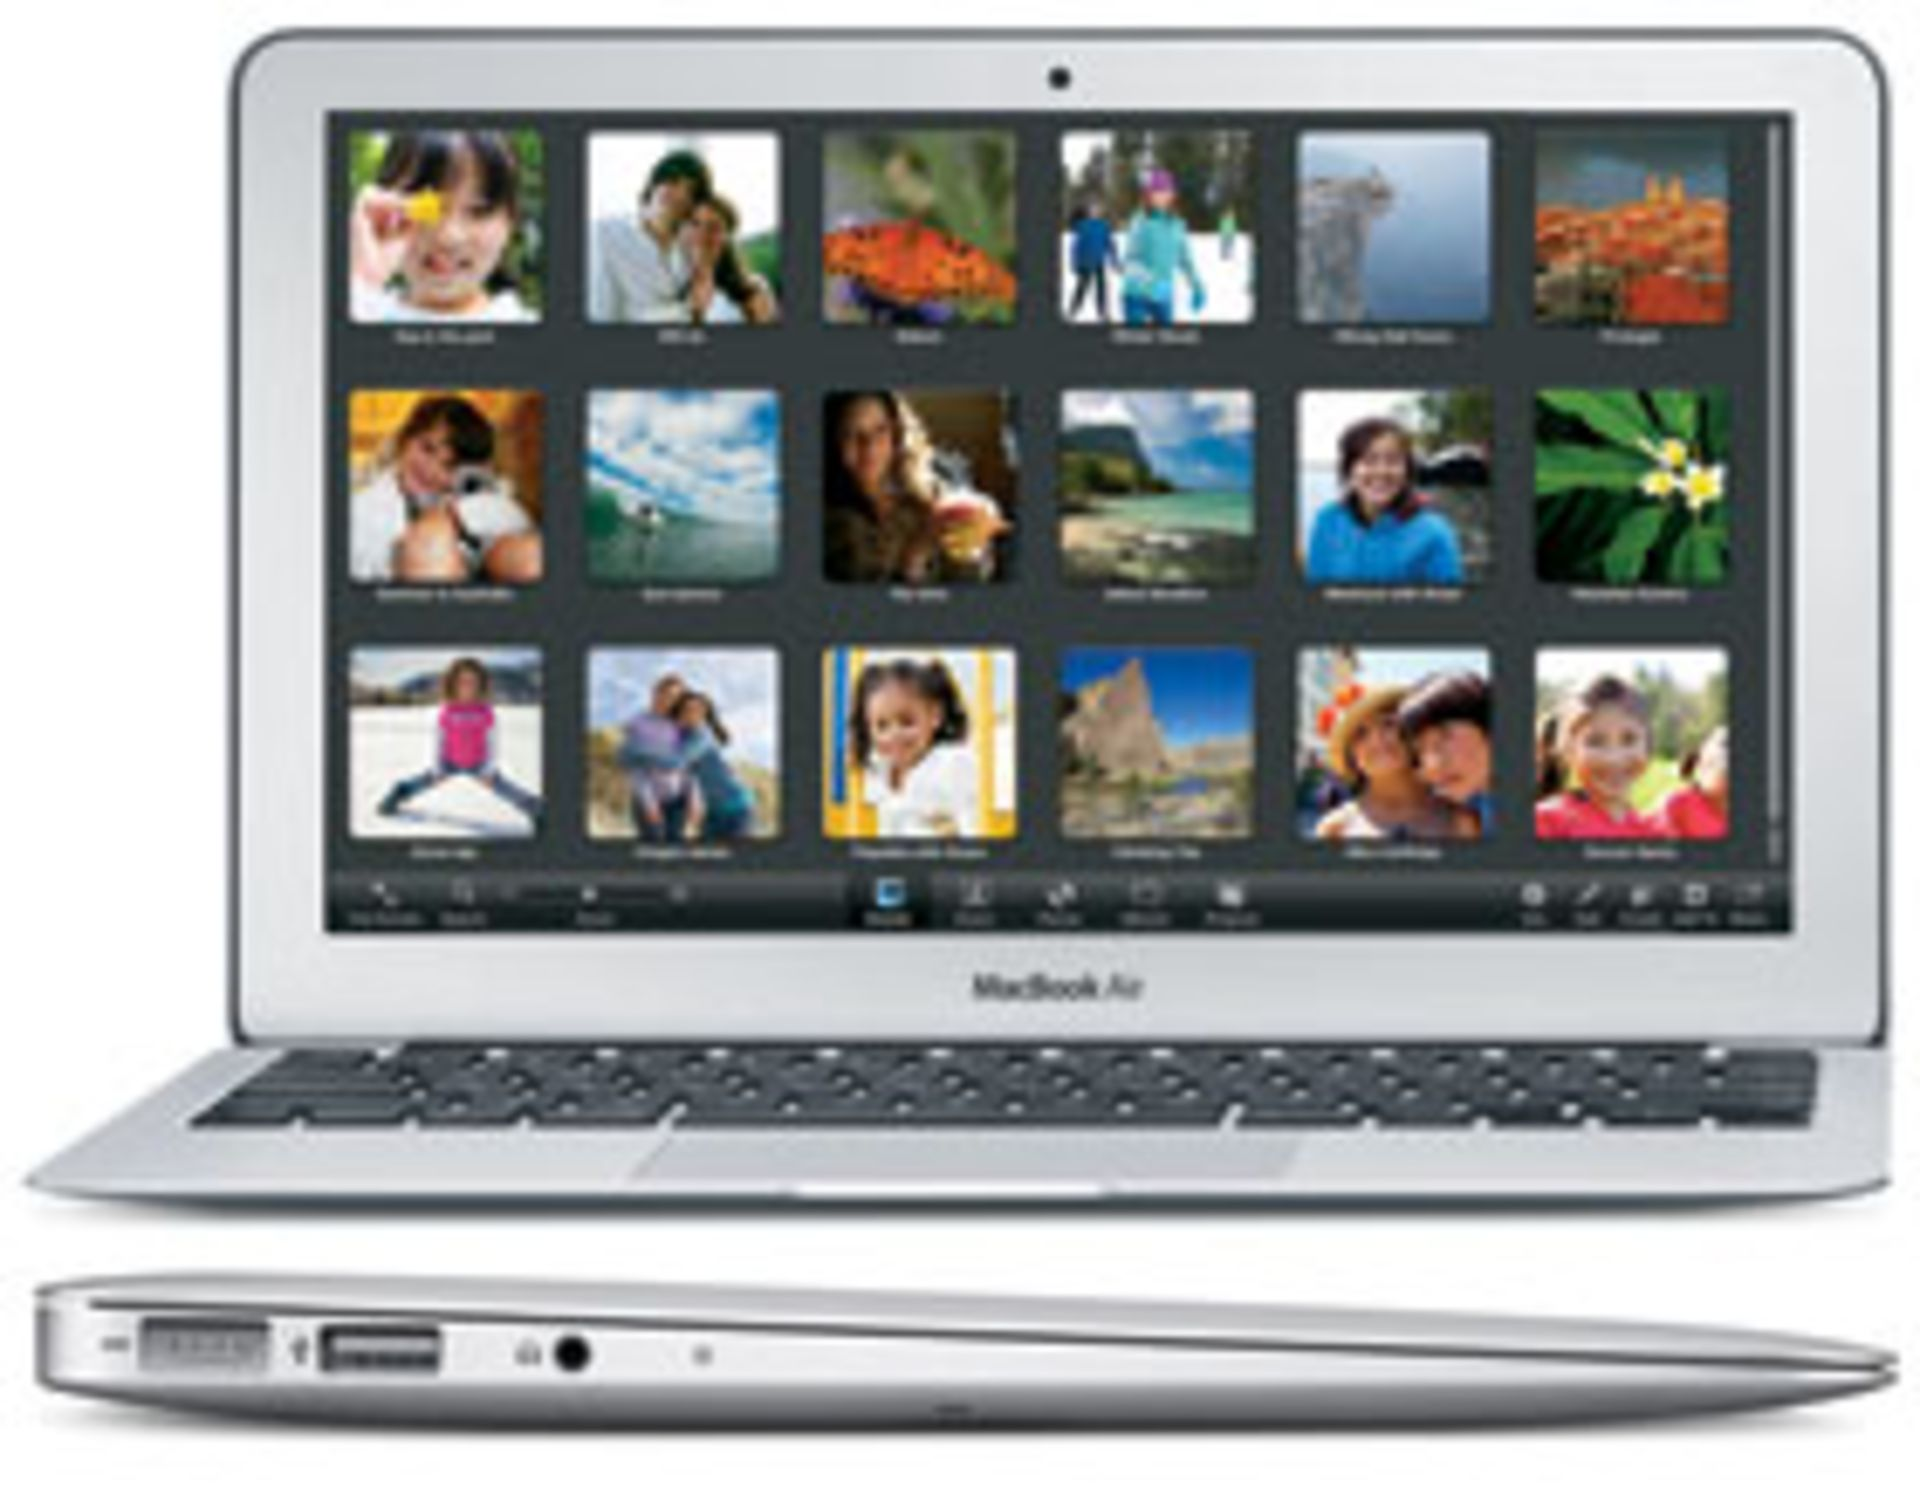 Lot 60014 - V Grade B Macbook Air 11.6 Inch Core 2 Duo - 64GB SSD - A1370 - Available Approx 7 Working Days